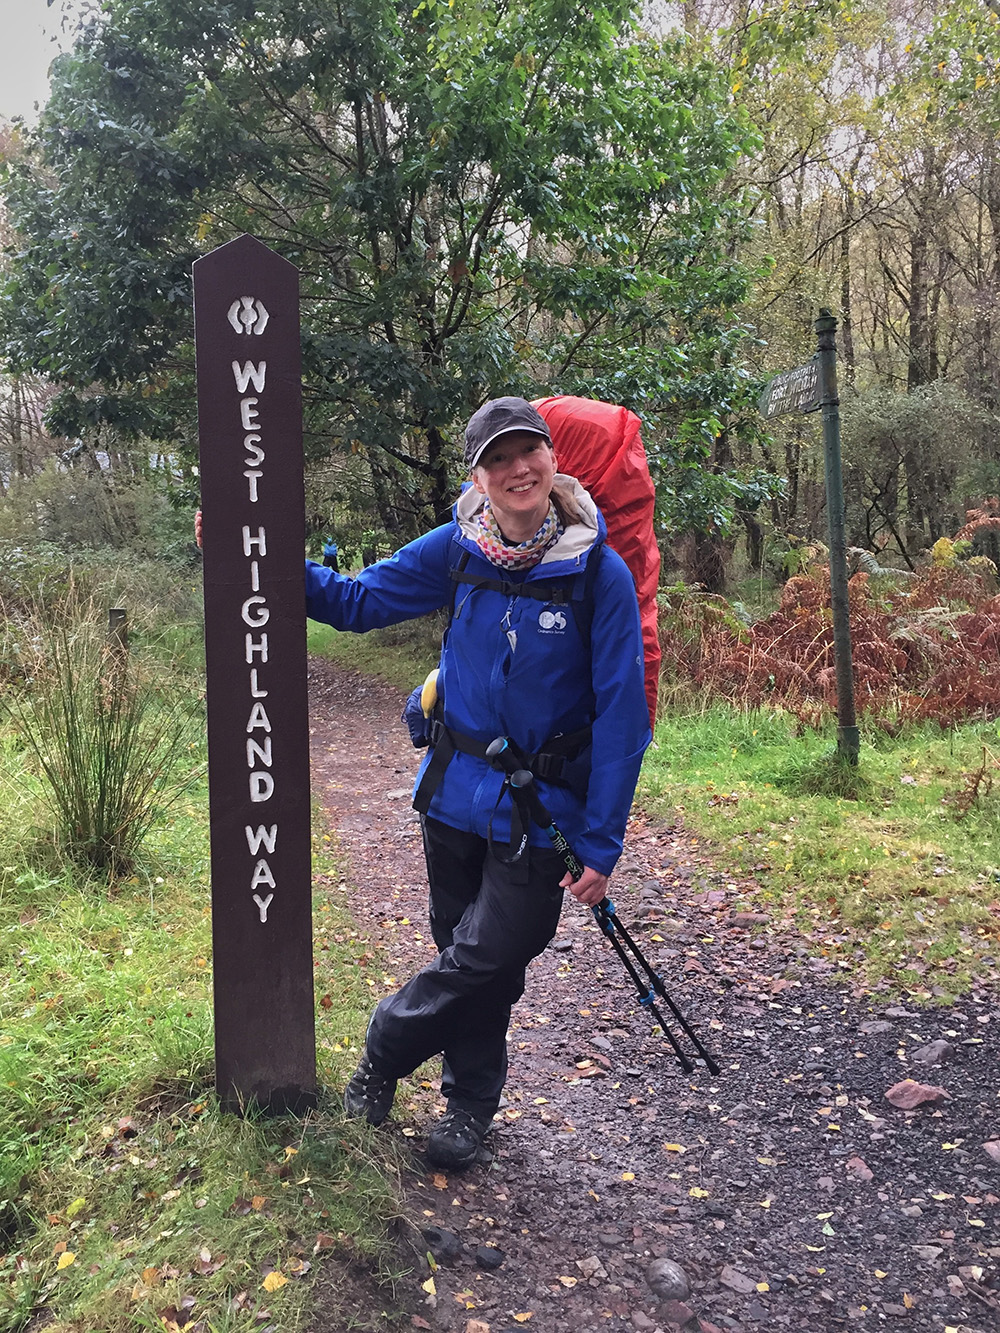 Splodz Blogz | West Highland Way